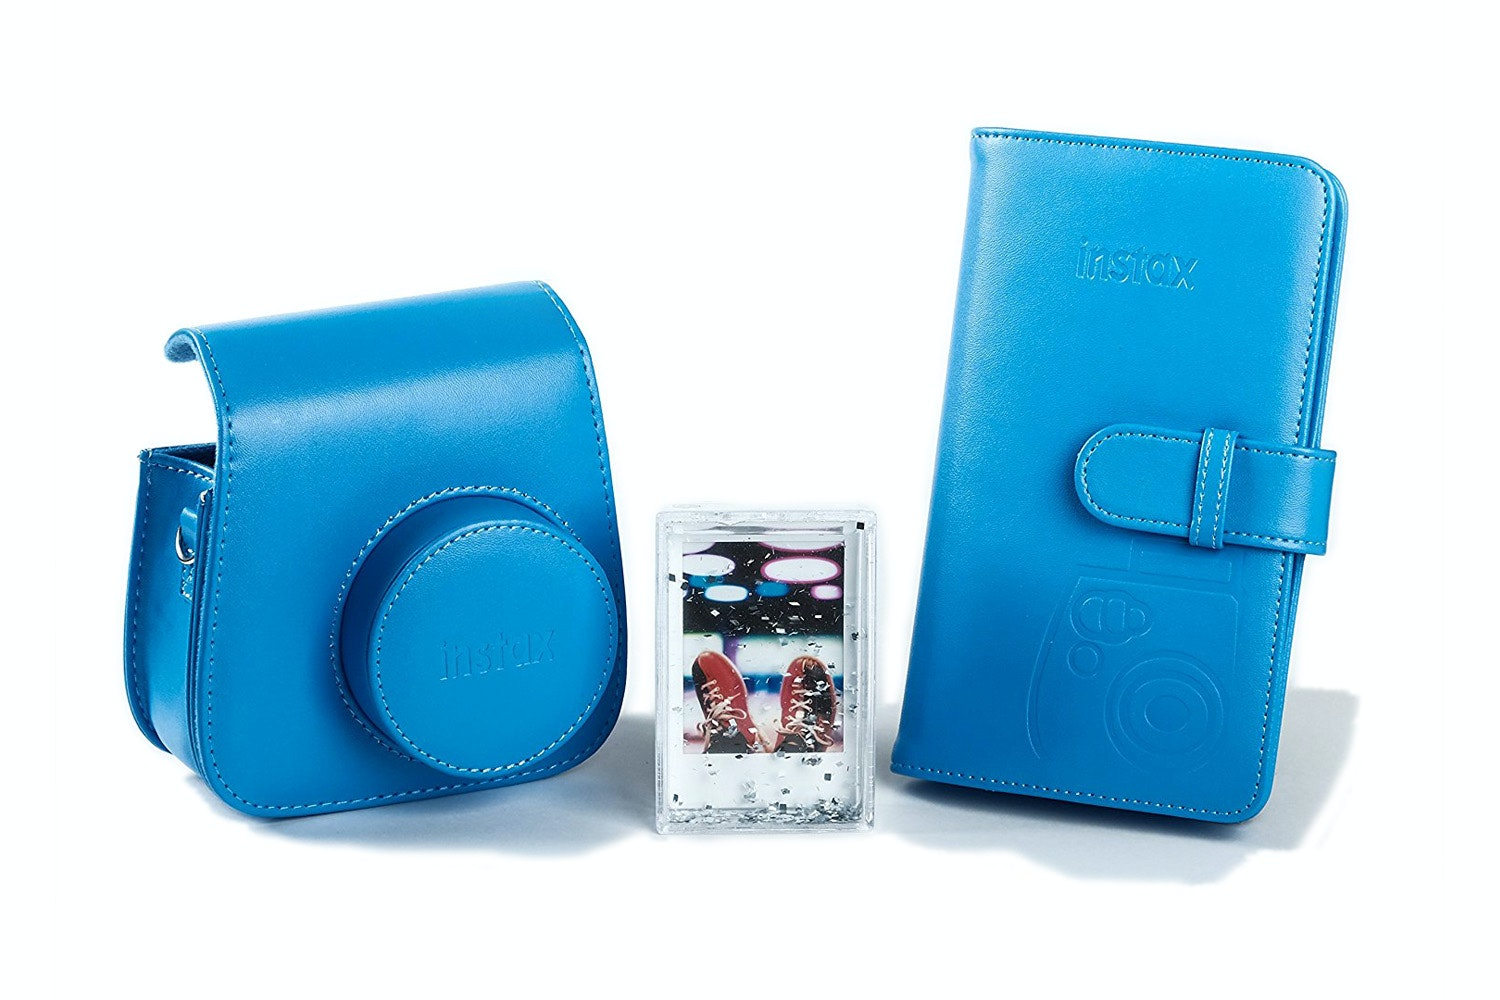 Fujifilm Instax Mini 9 Accessory Kit | Cobalt Blue